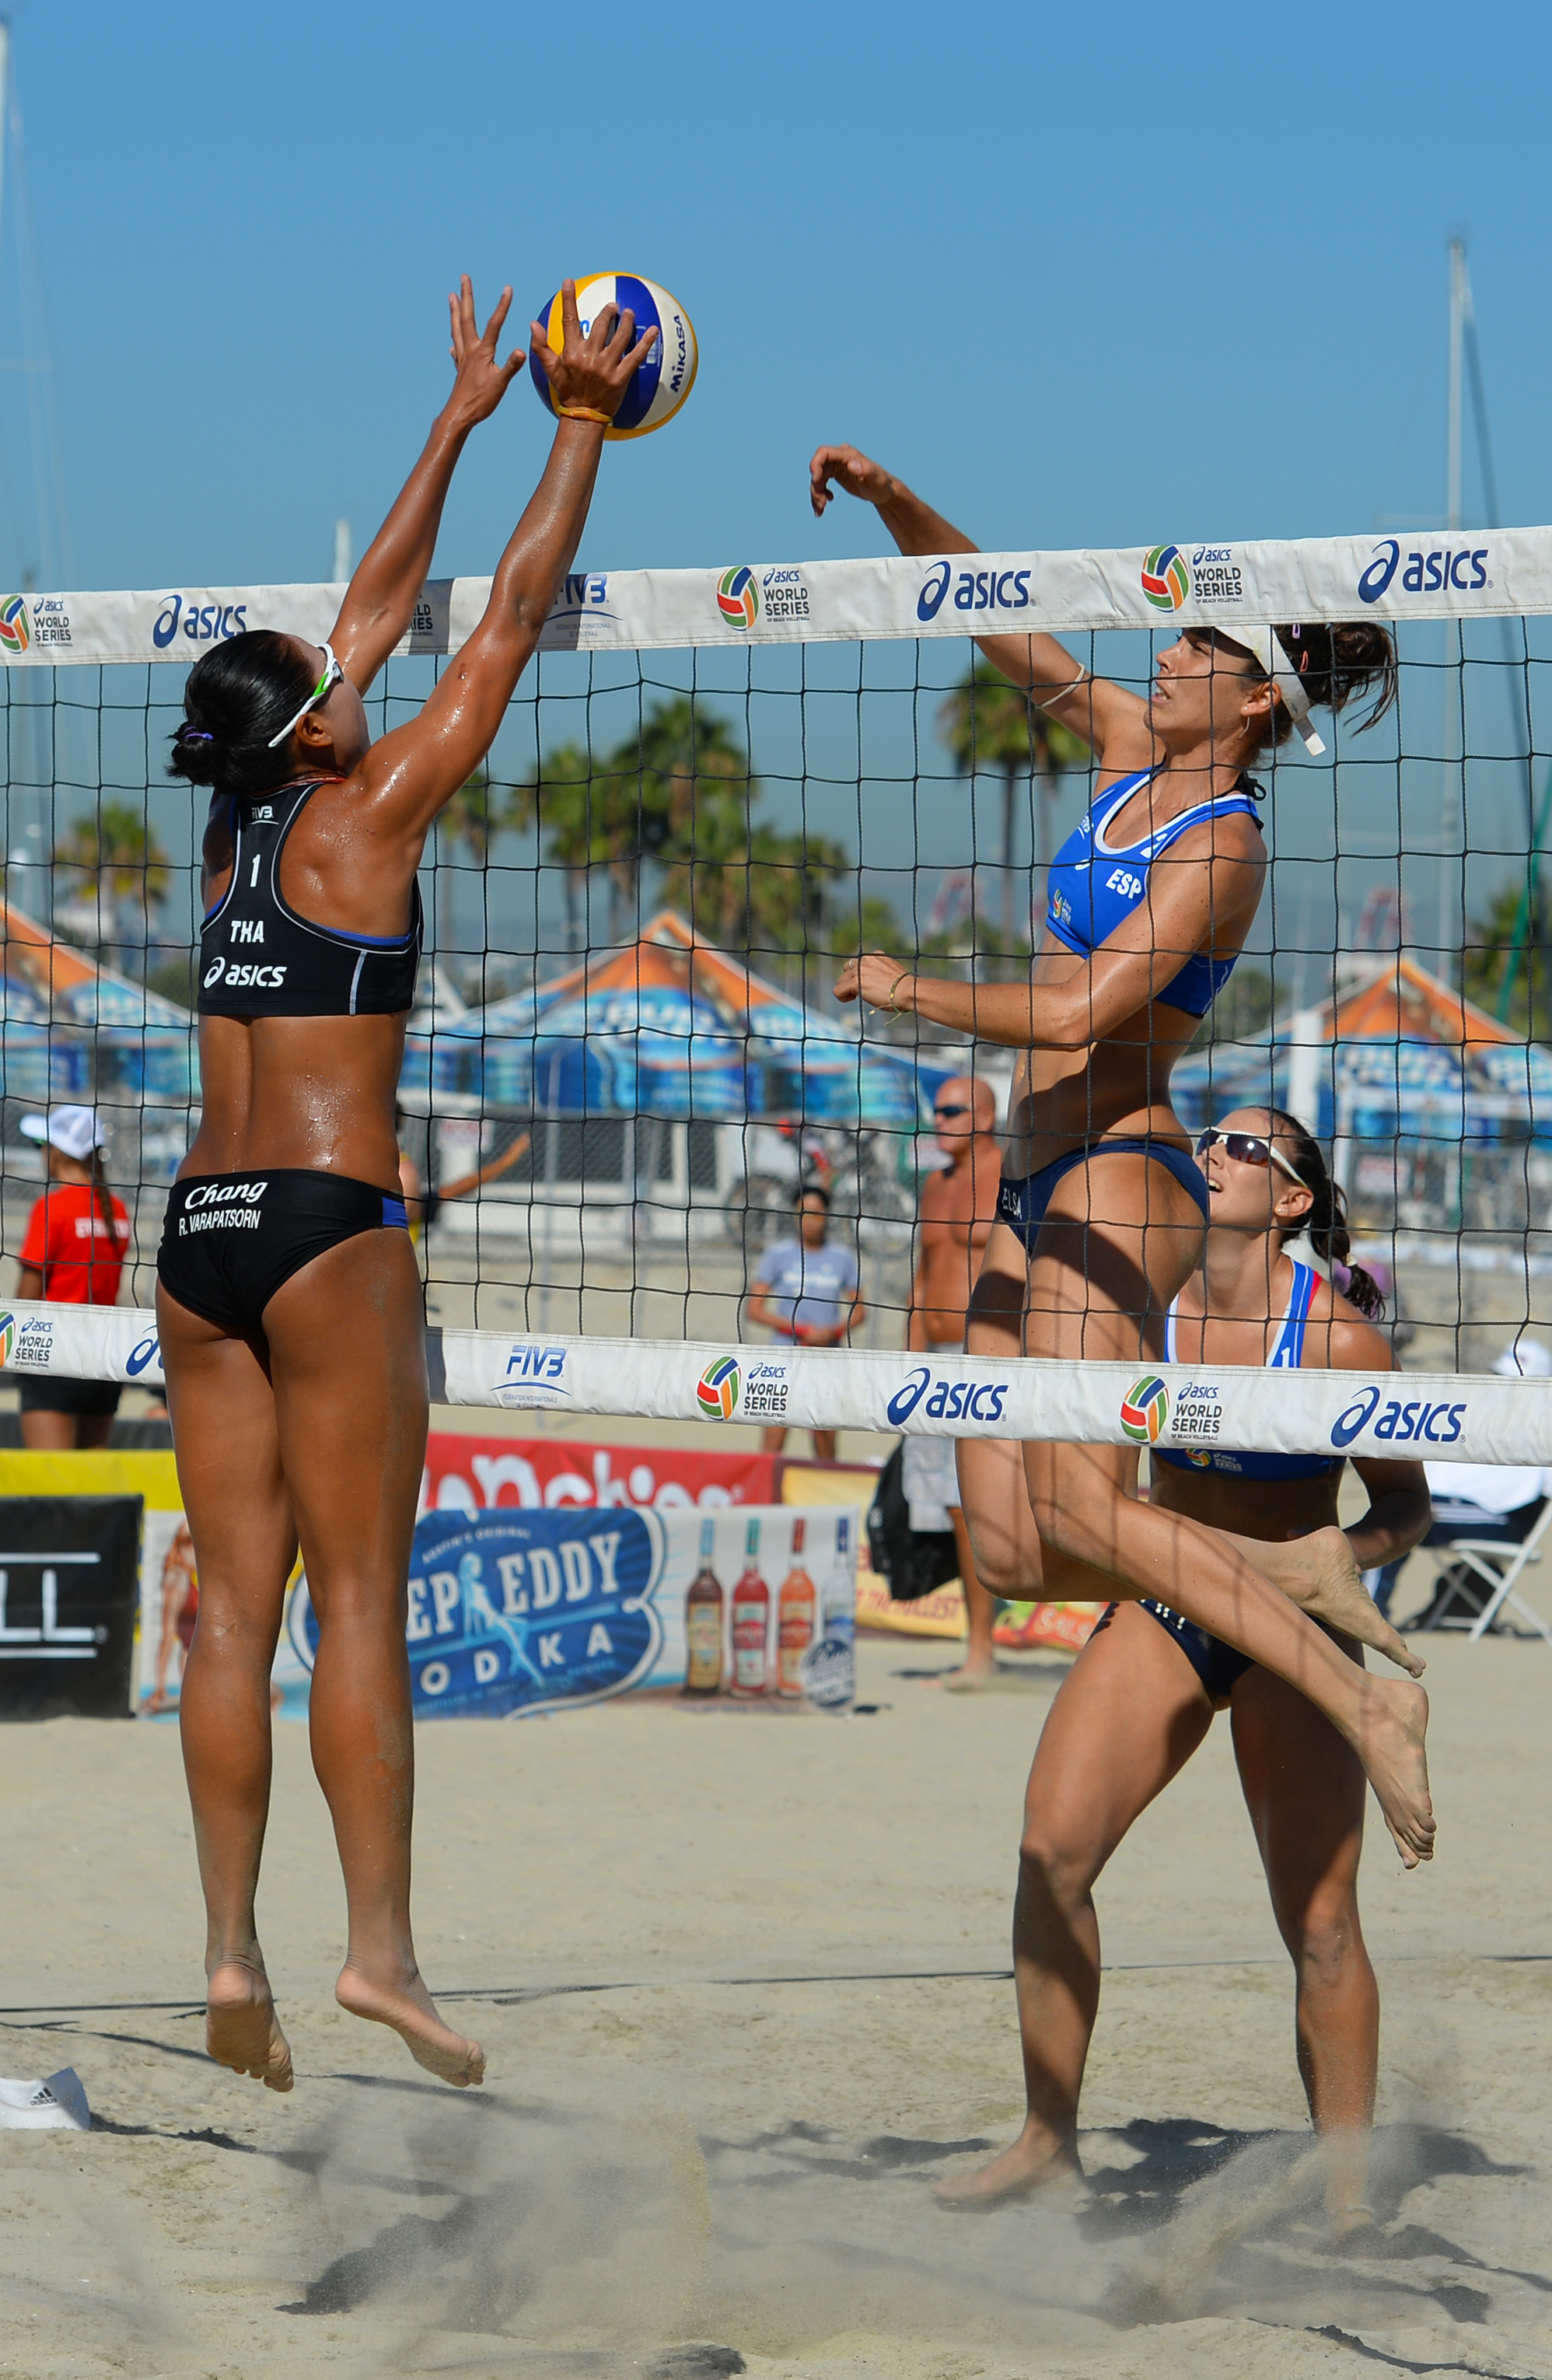 Elsa Baquerizo of Spain (right) spikes the Mikasa against Varapatsorn Radarong of Thailand as Liliana Fernandez of Spain looks on.